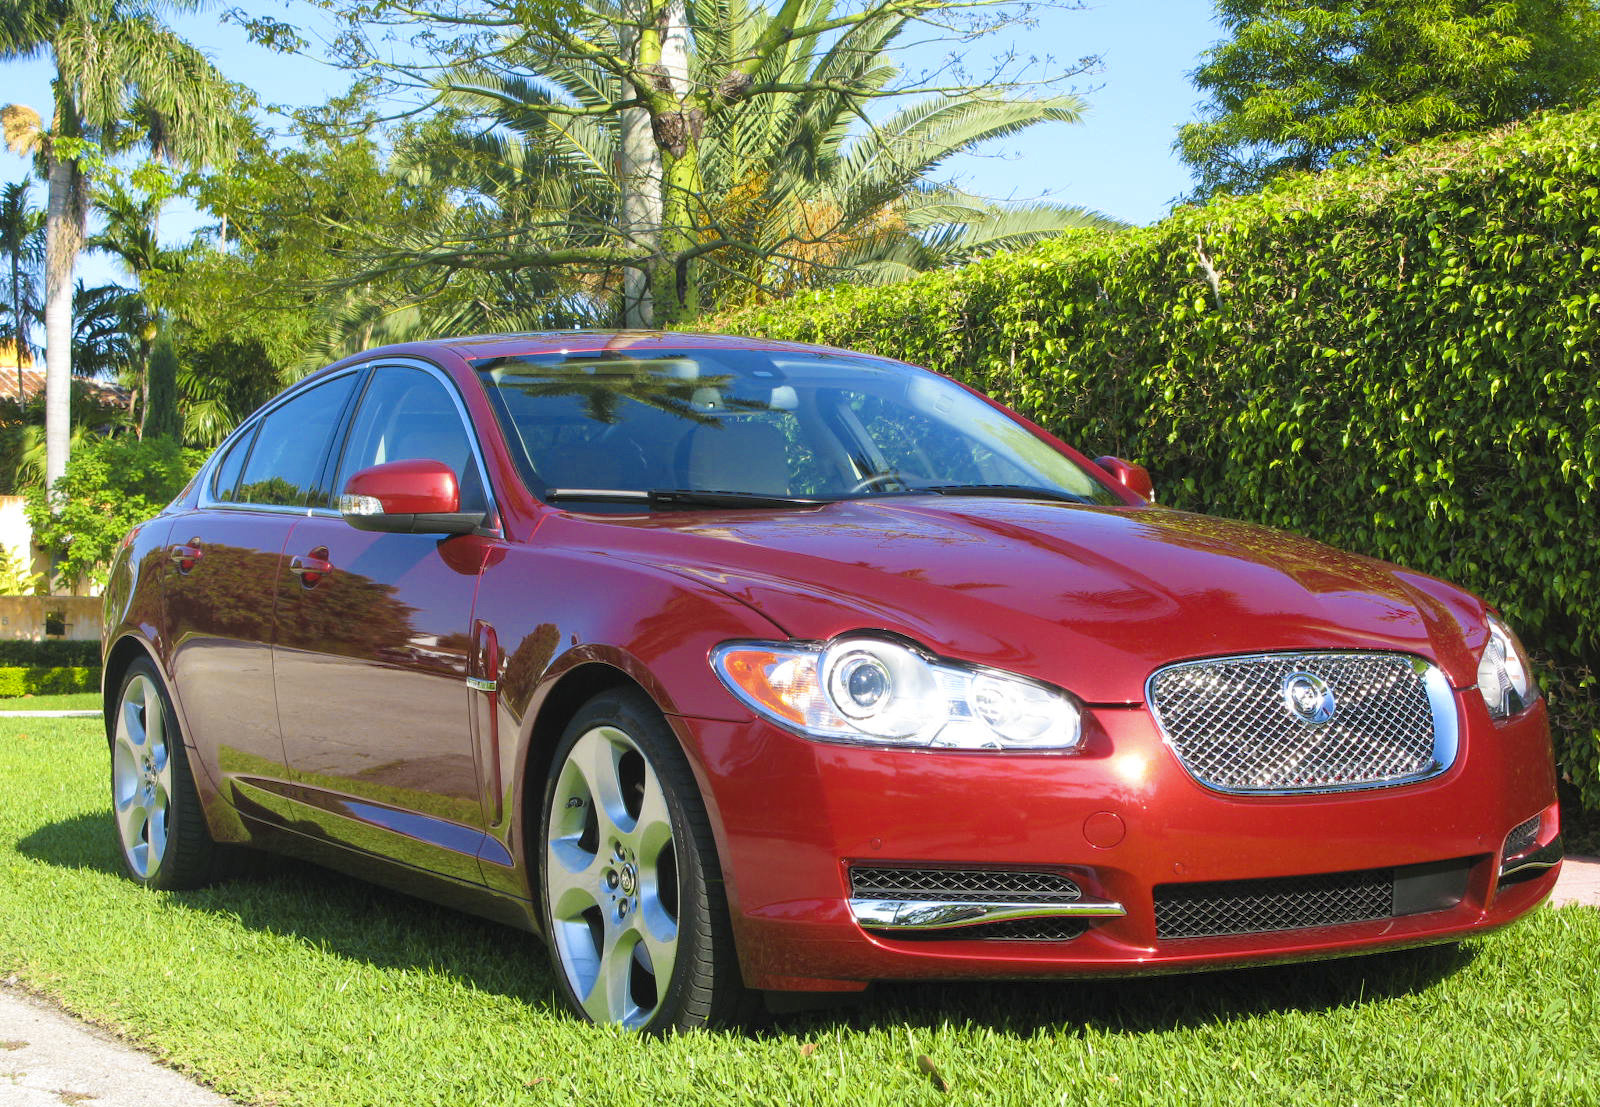 2009 jaguar xf supercharged picture 301922 car review top speed. Black Bedroom Furniture Sets. Home Design Ideas